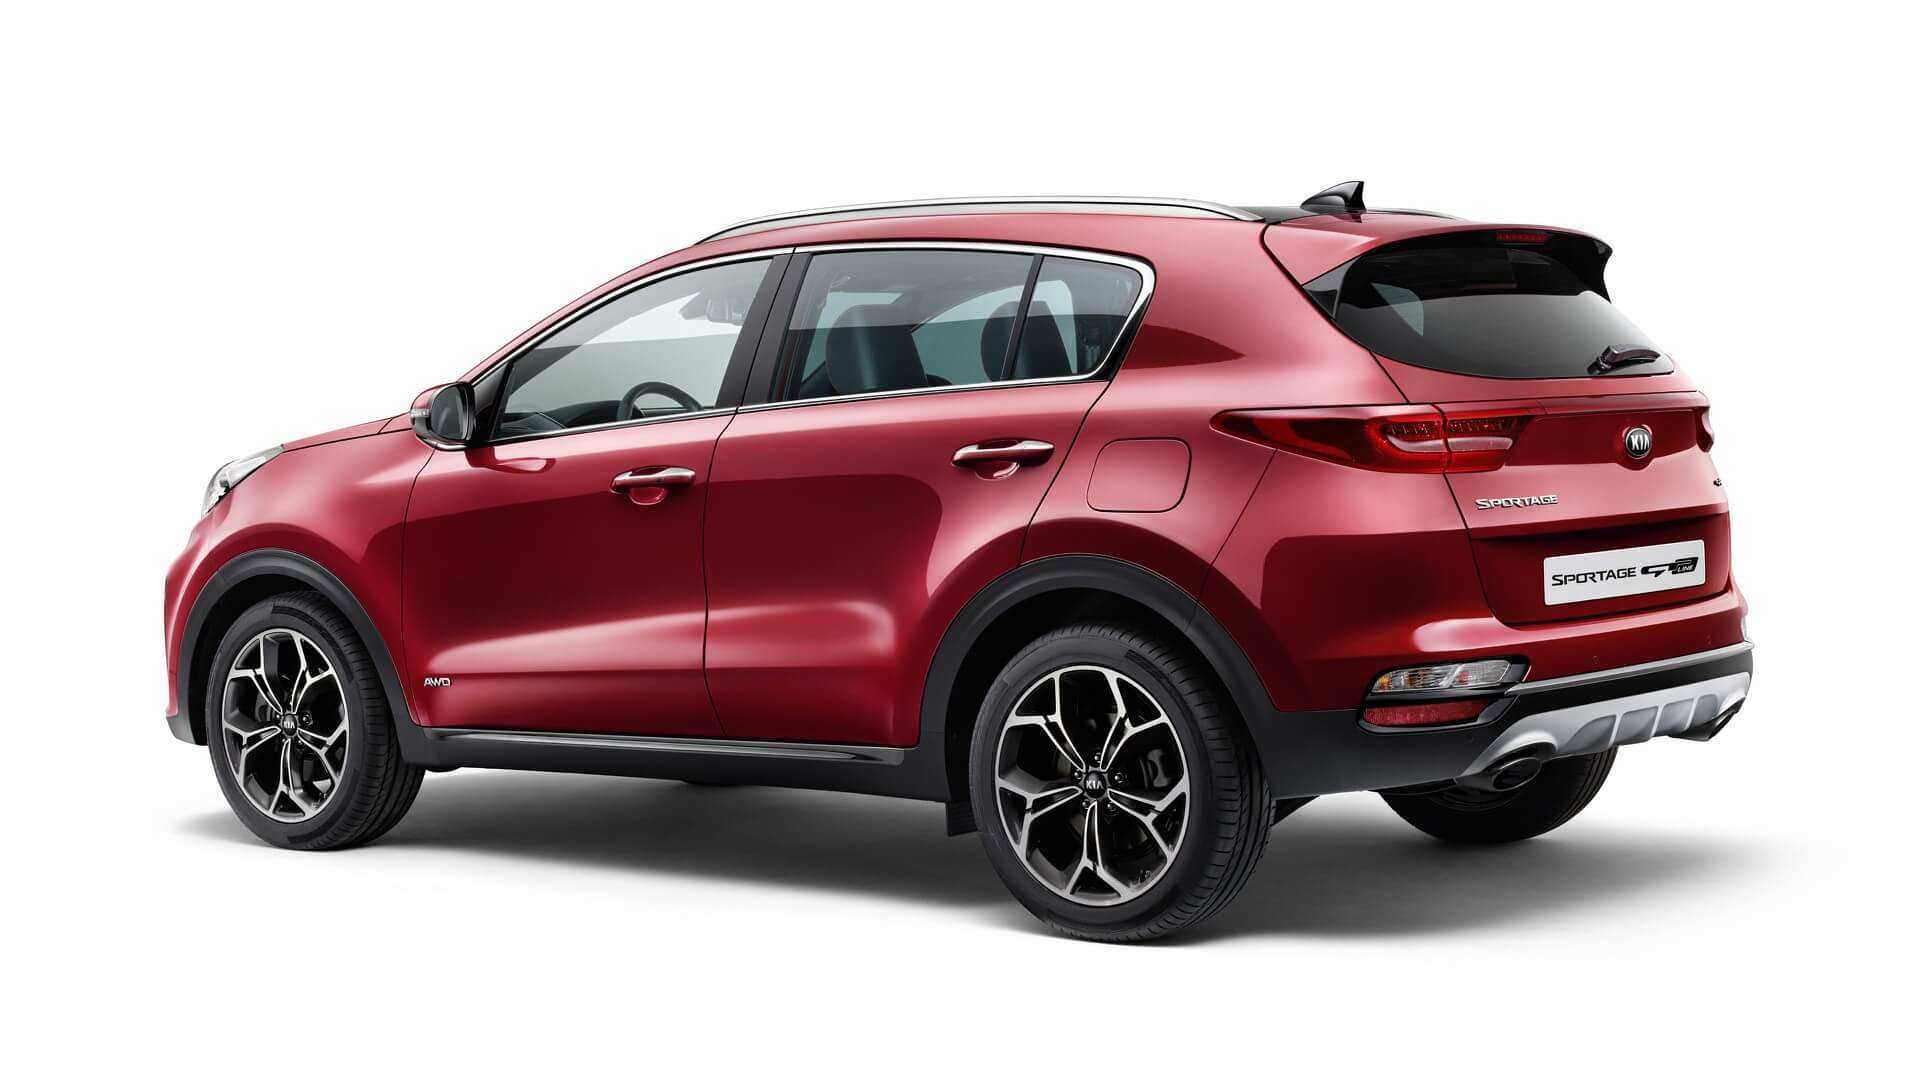 95 Best Review Kia Sportage 2020 Uk Specs and Review with Kia Sportage 2020 Uk